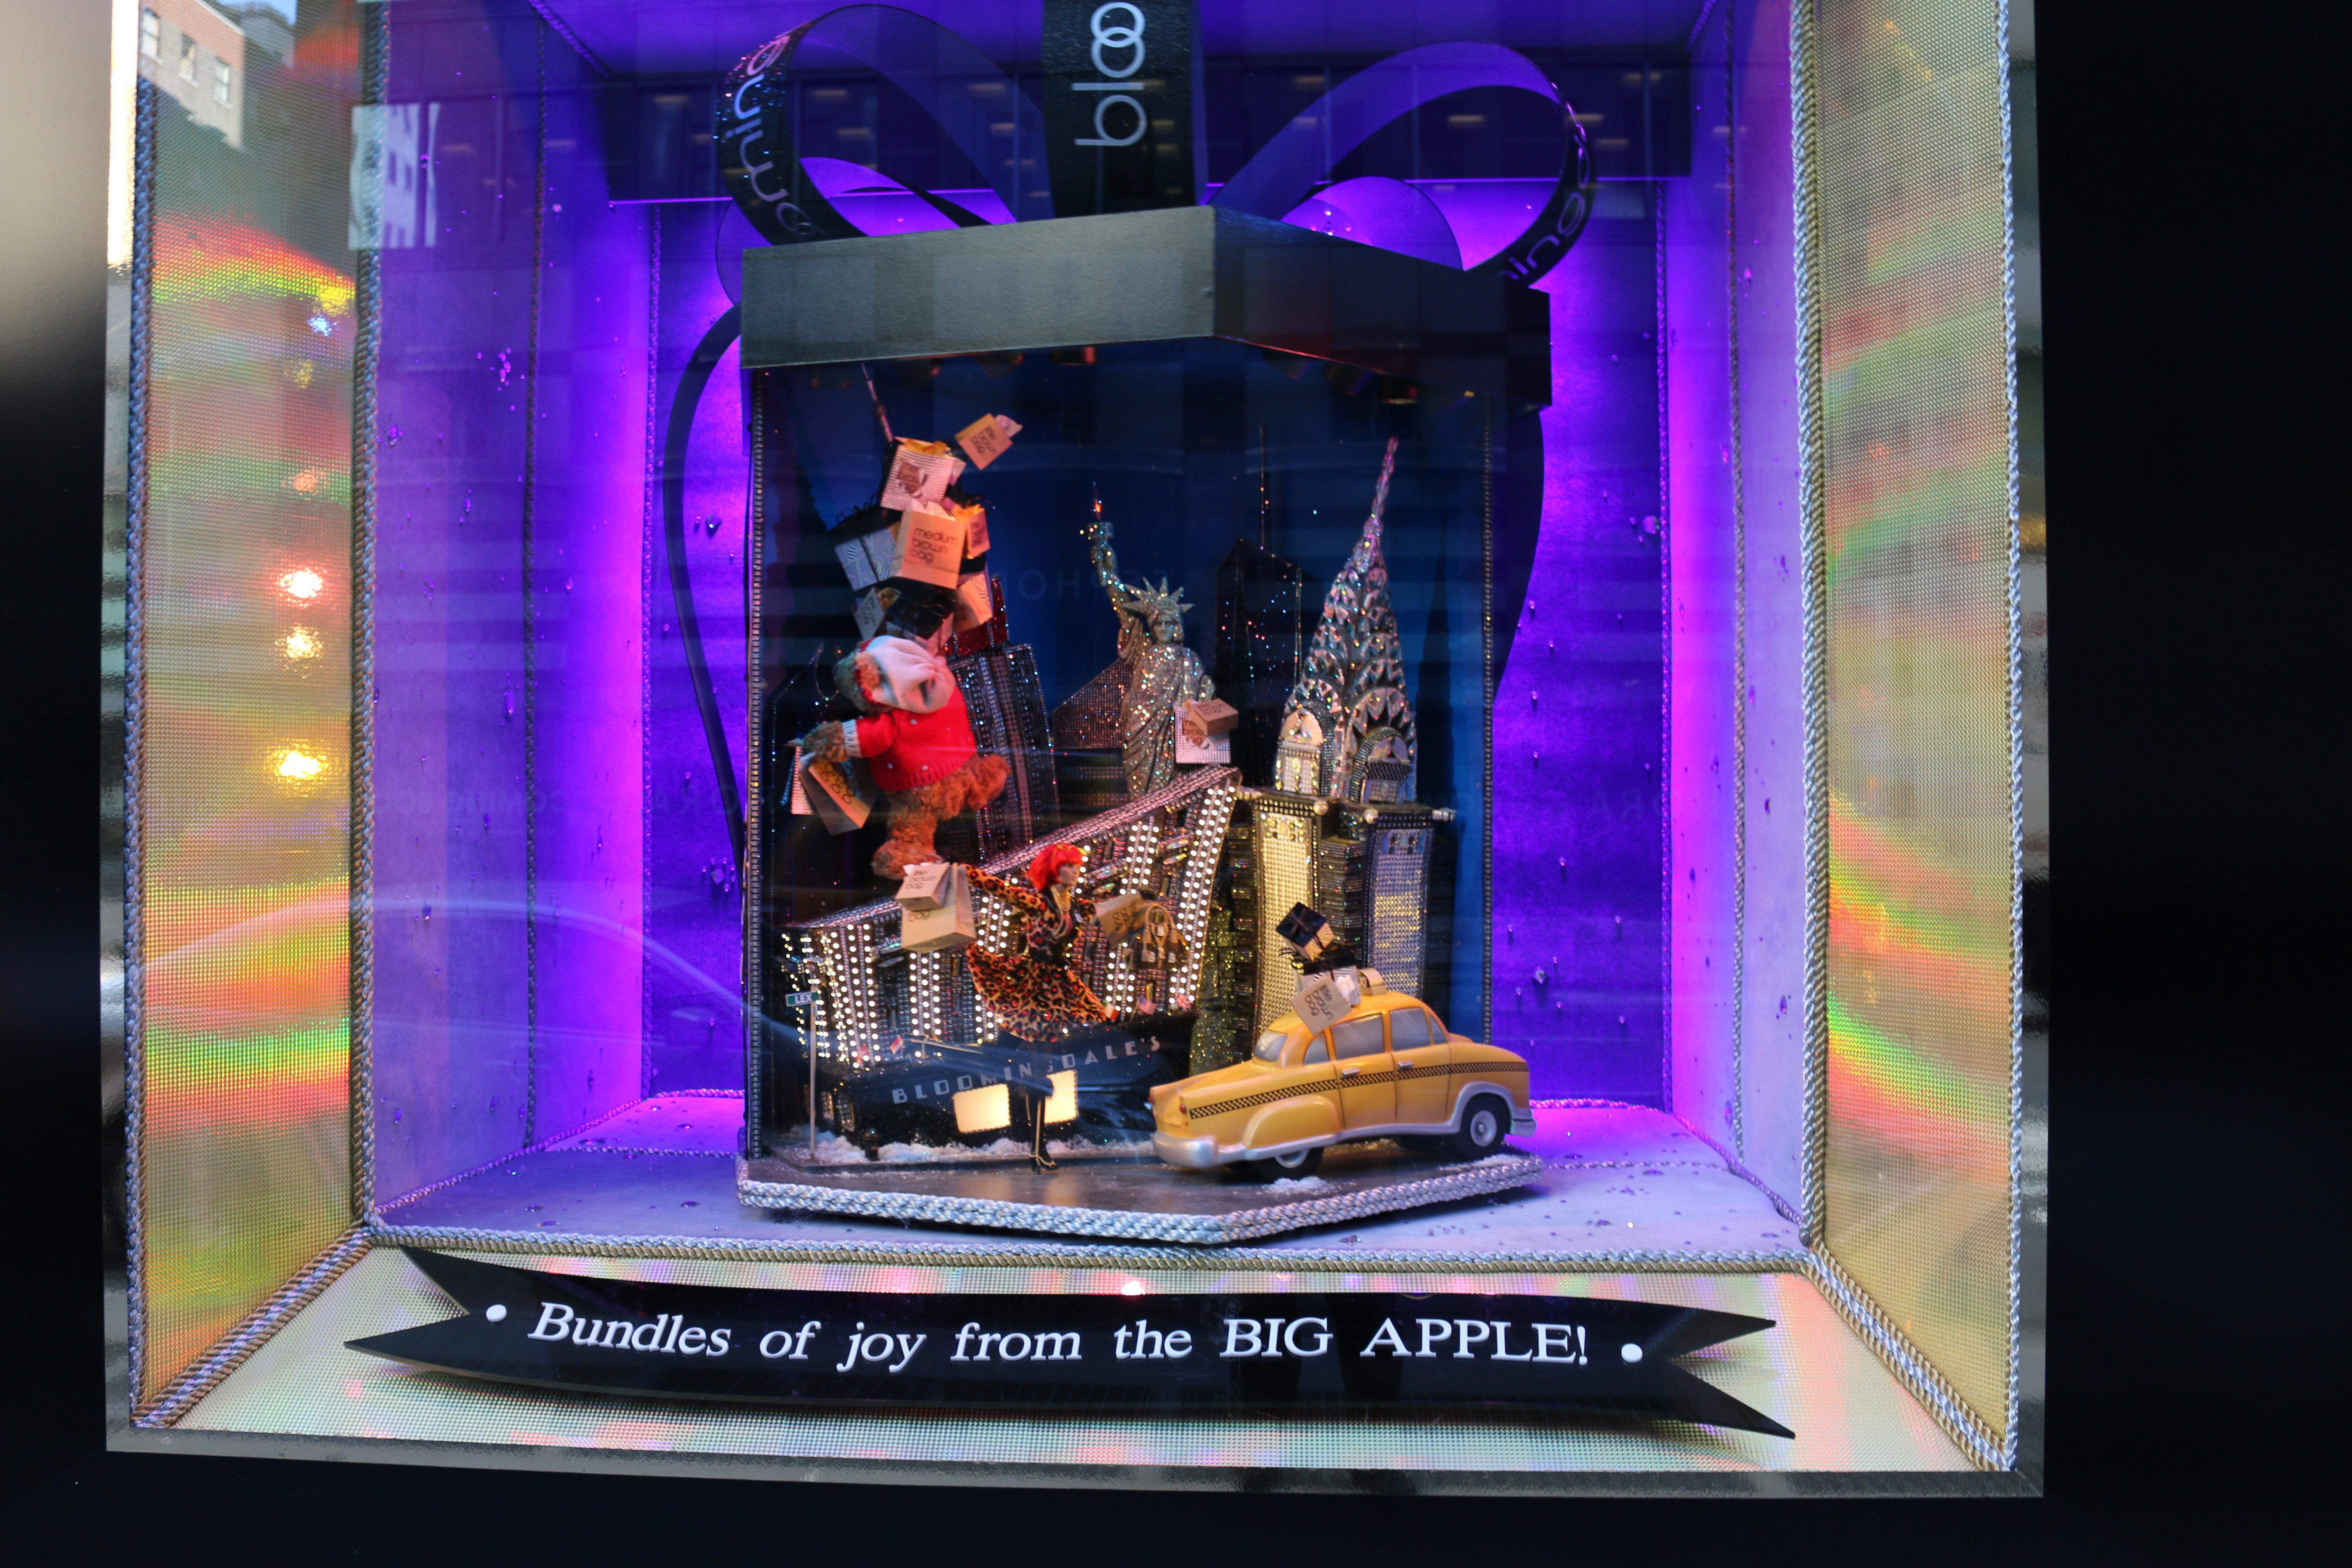 Visit the Holiday Window Displays in New York City